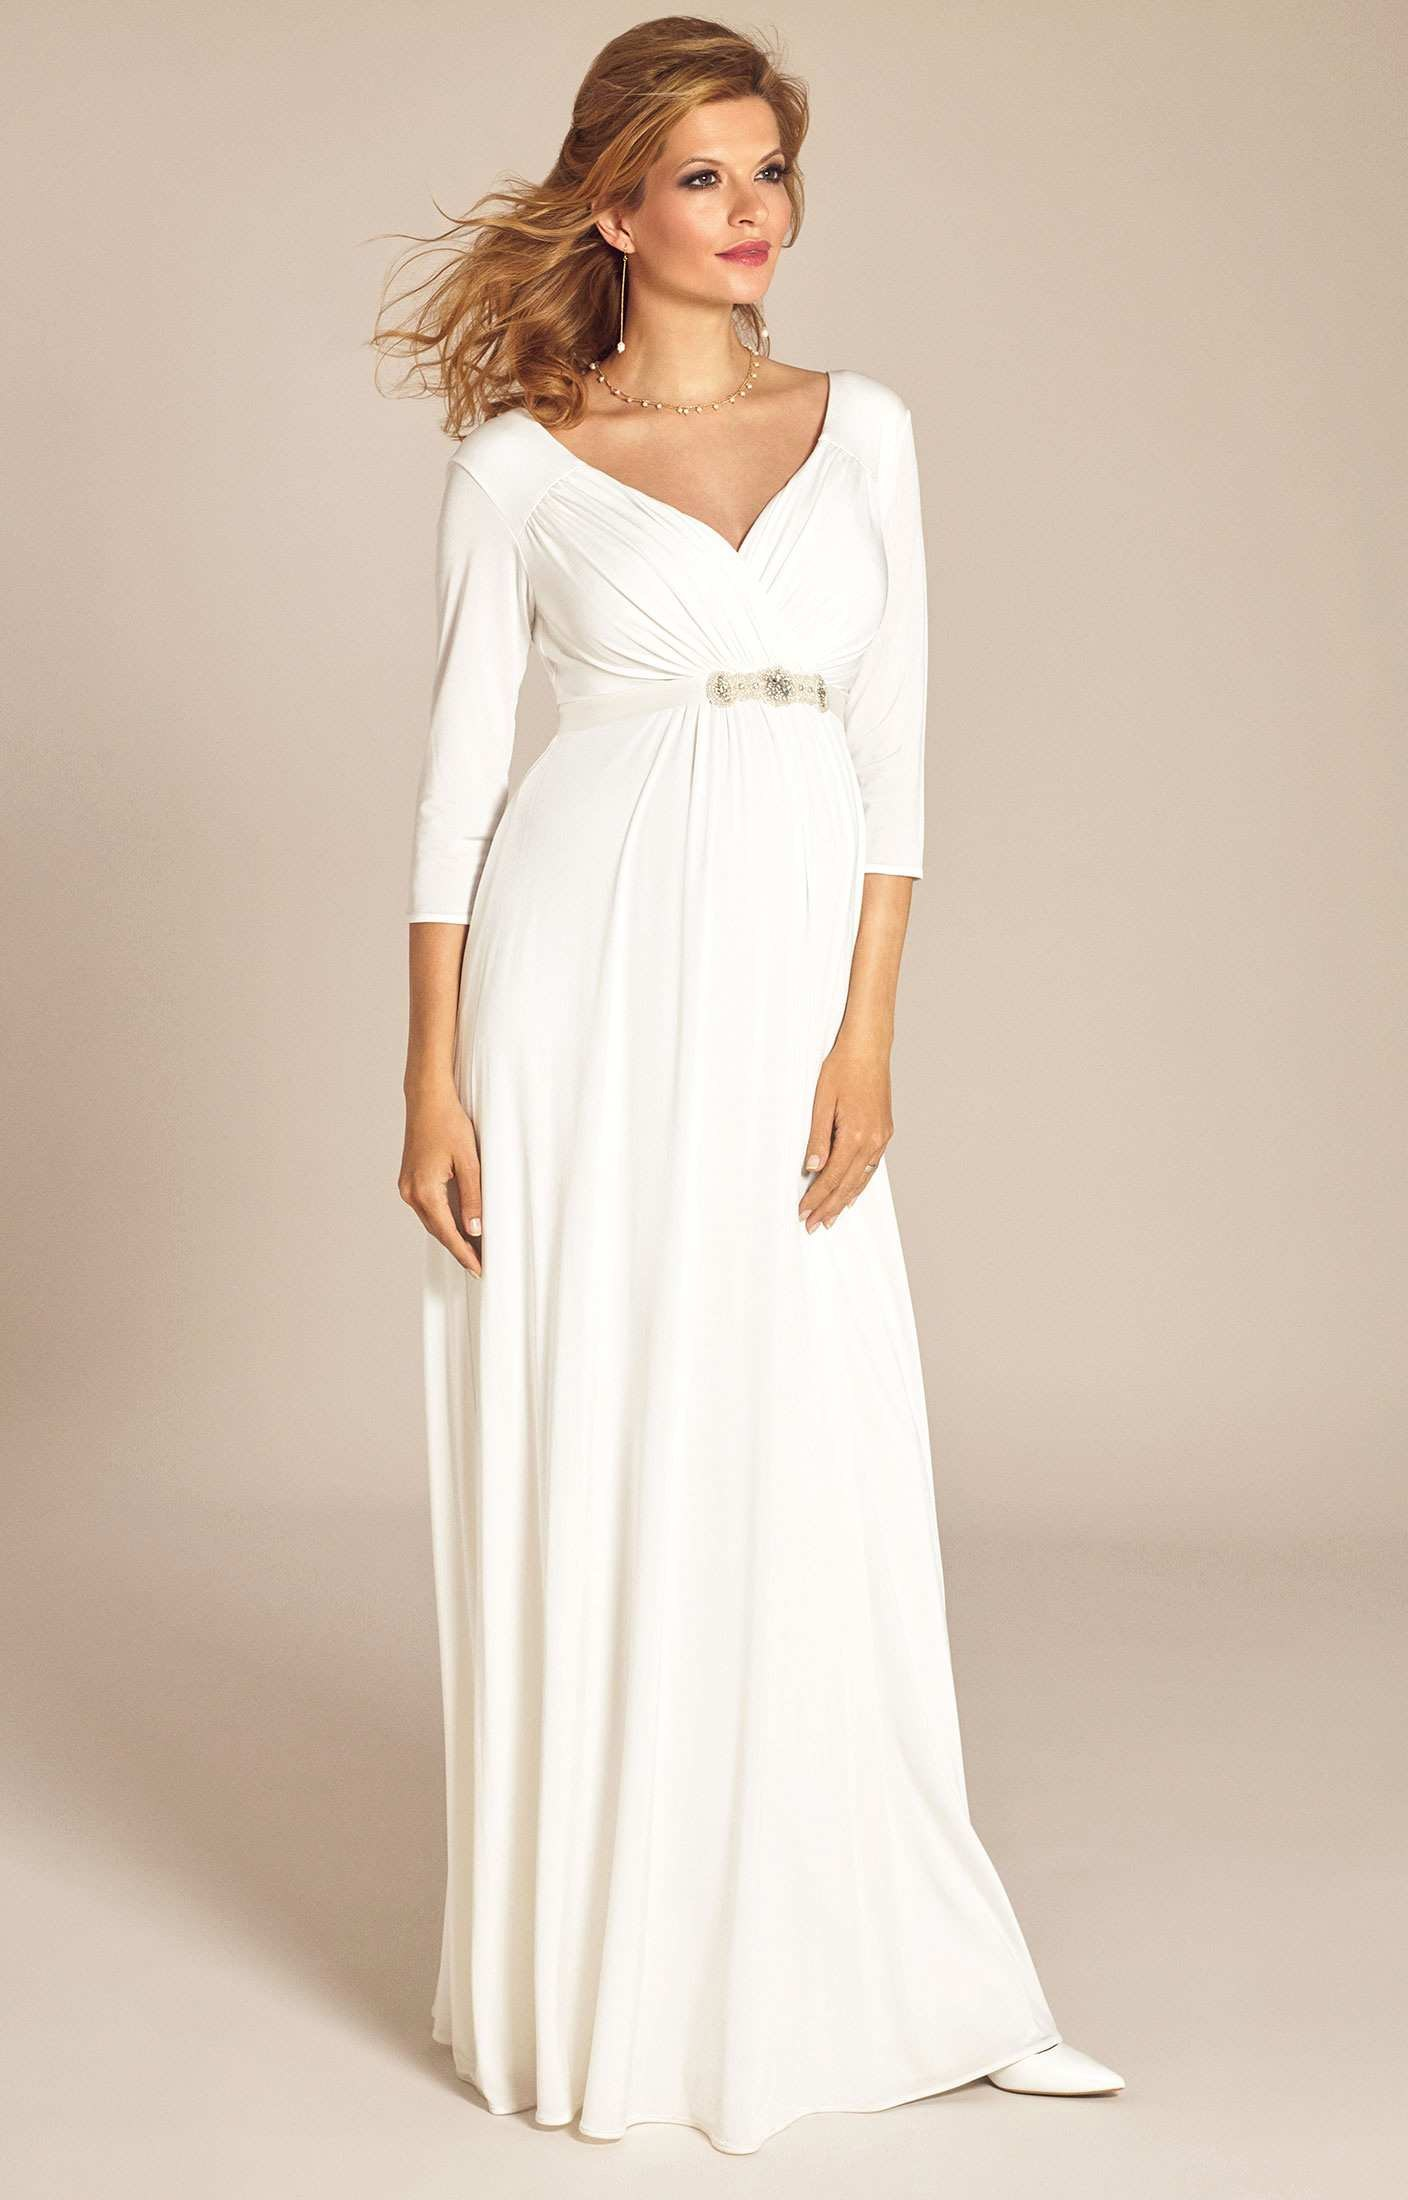 Inspirational wedding dress david bridal